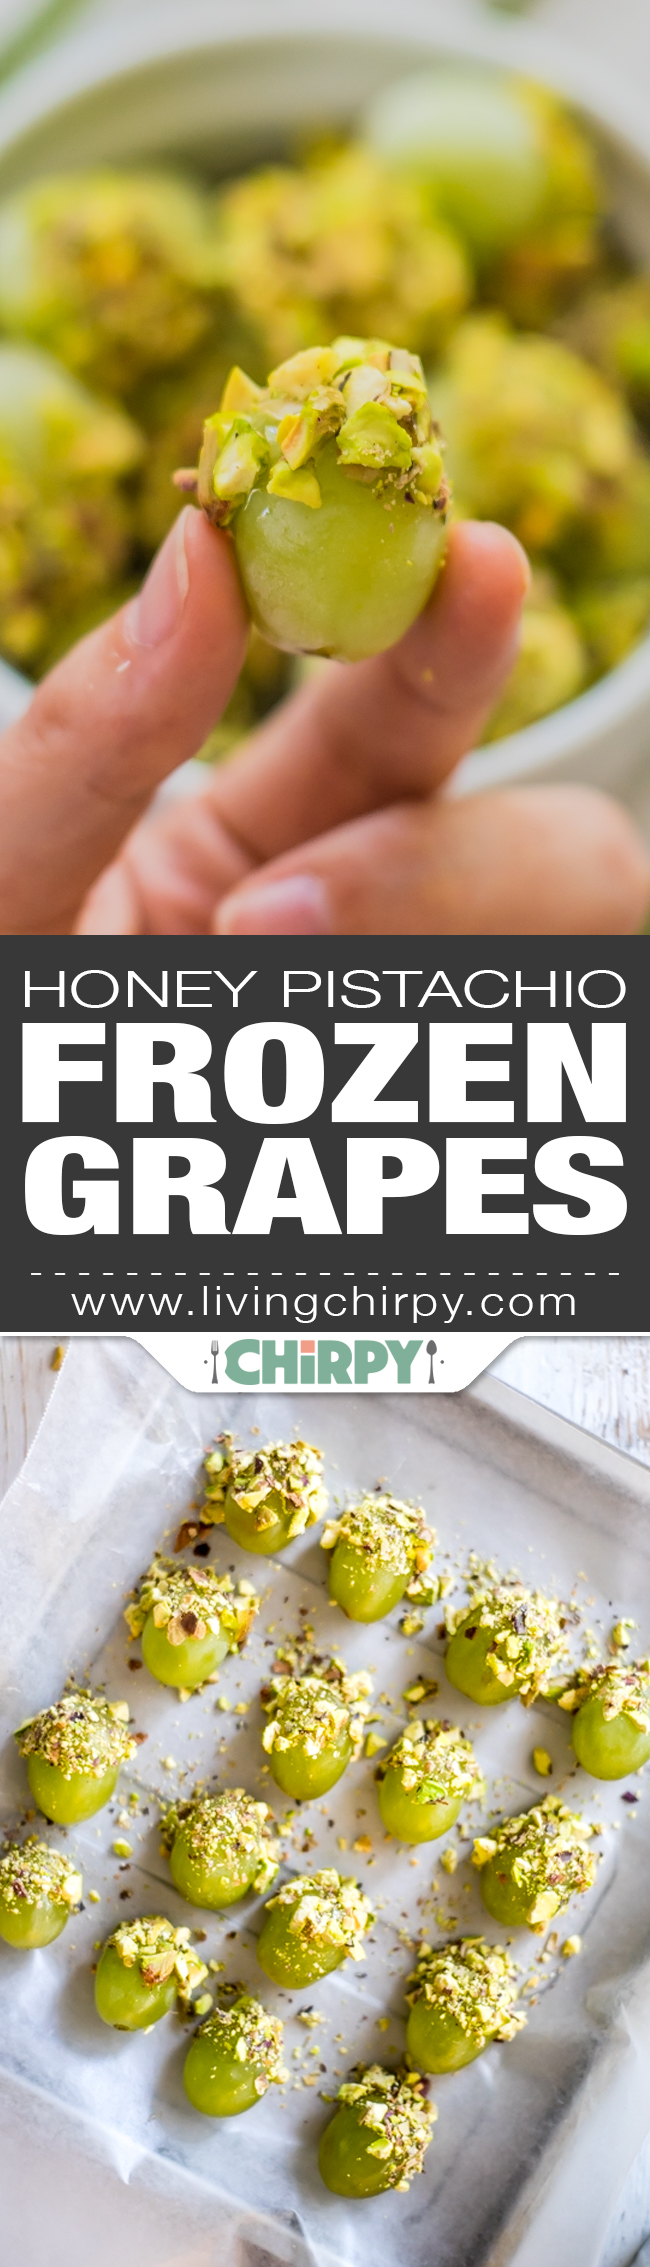 Honey Pistachio Frozen Grapes